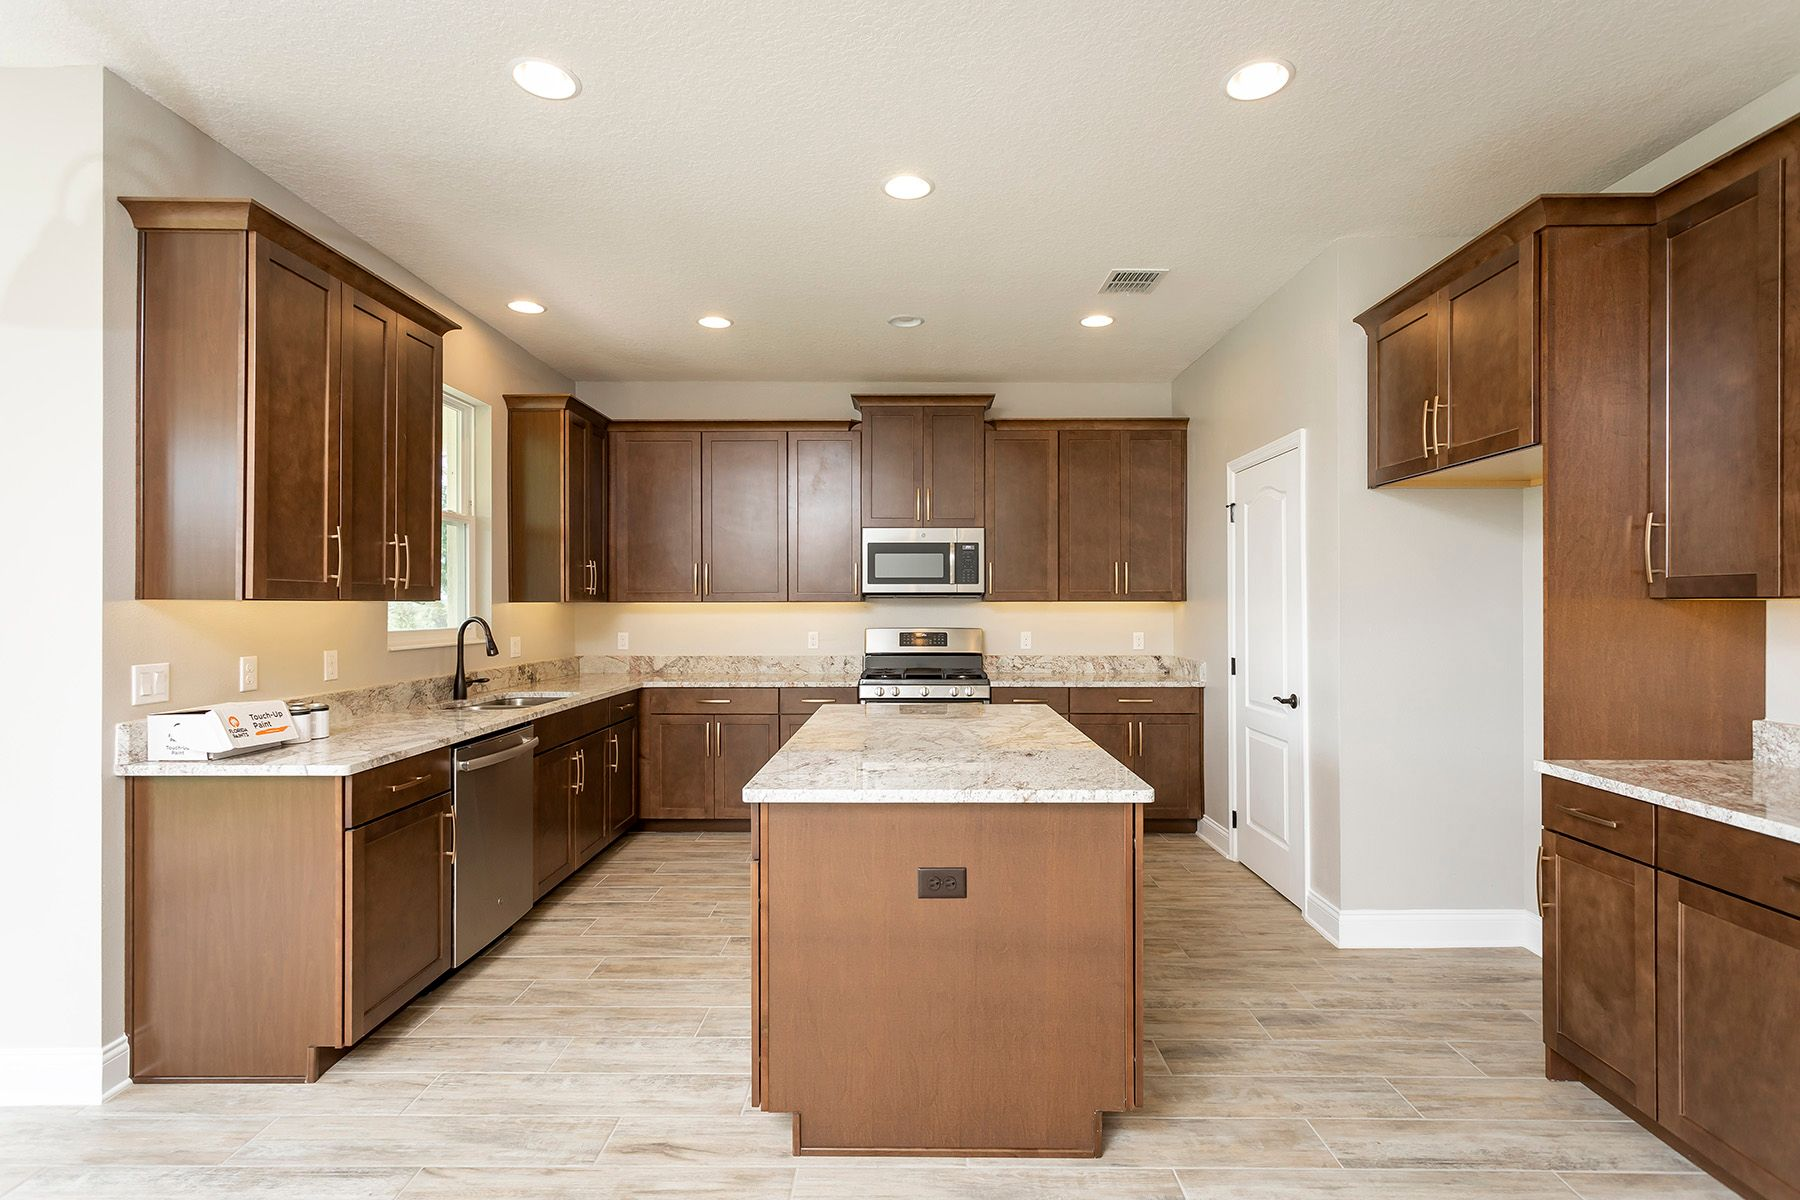 Kitchen featured in the Chatham By M/I Homes in Orlando, FL